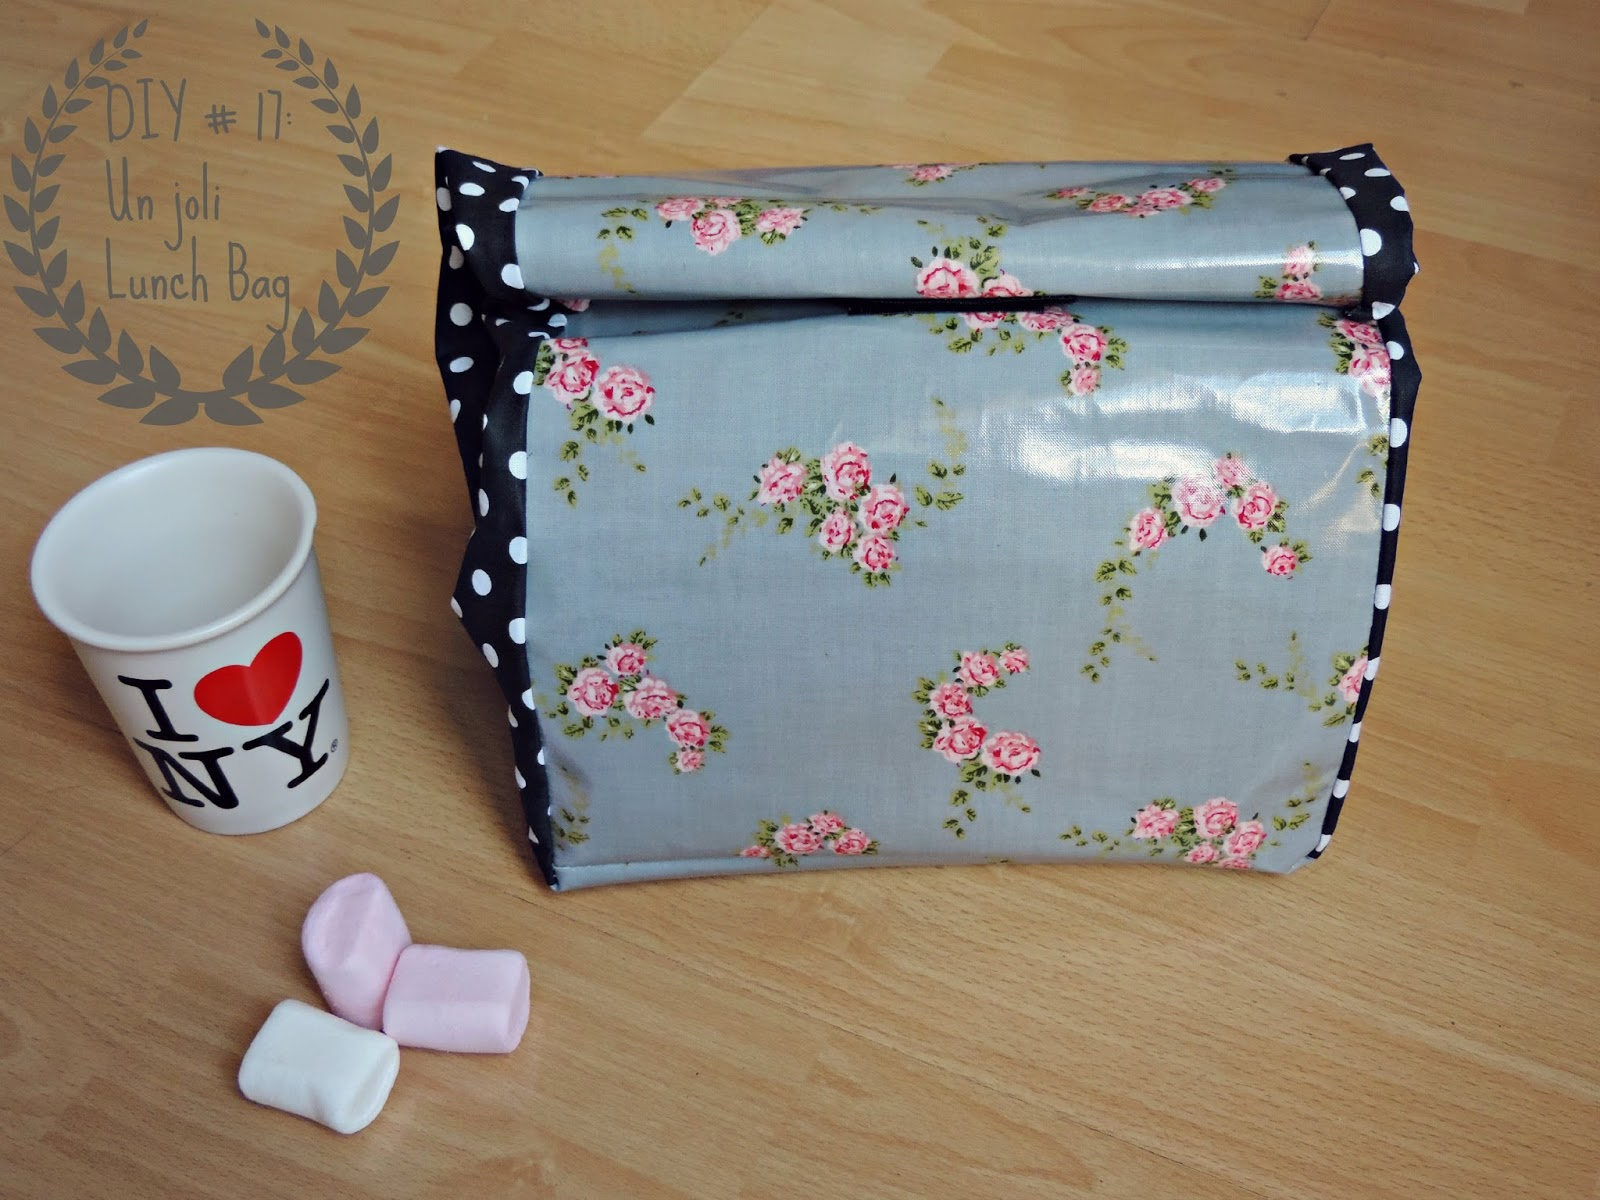 http://mynameisgeorges.blogspot.com/2014/07/diy-17-un-joli-lunch-bag.html